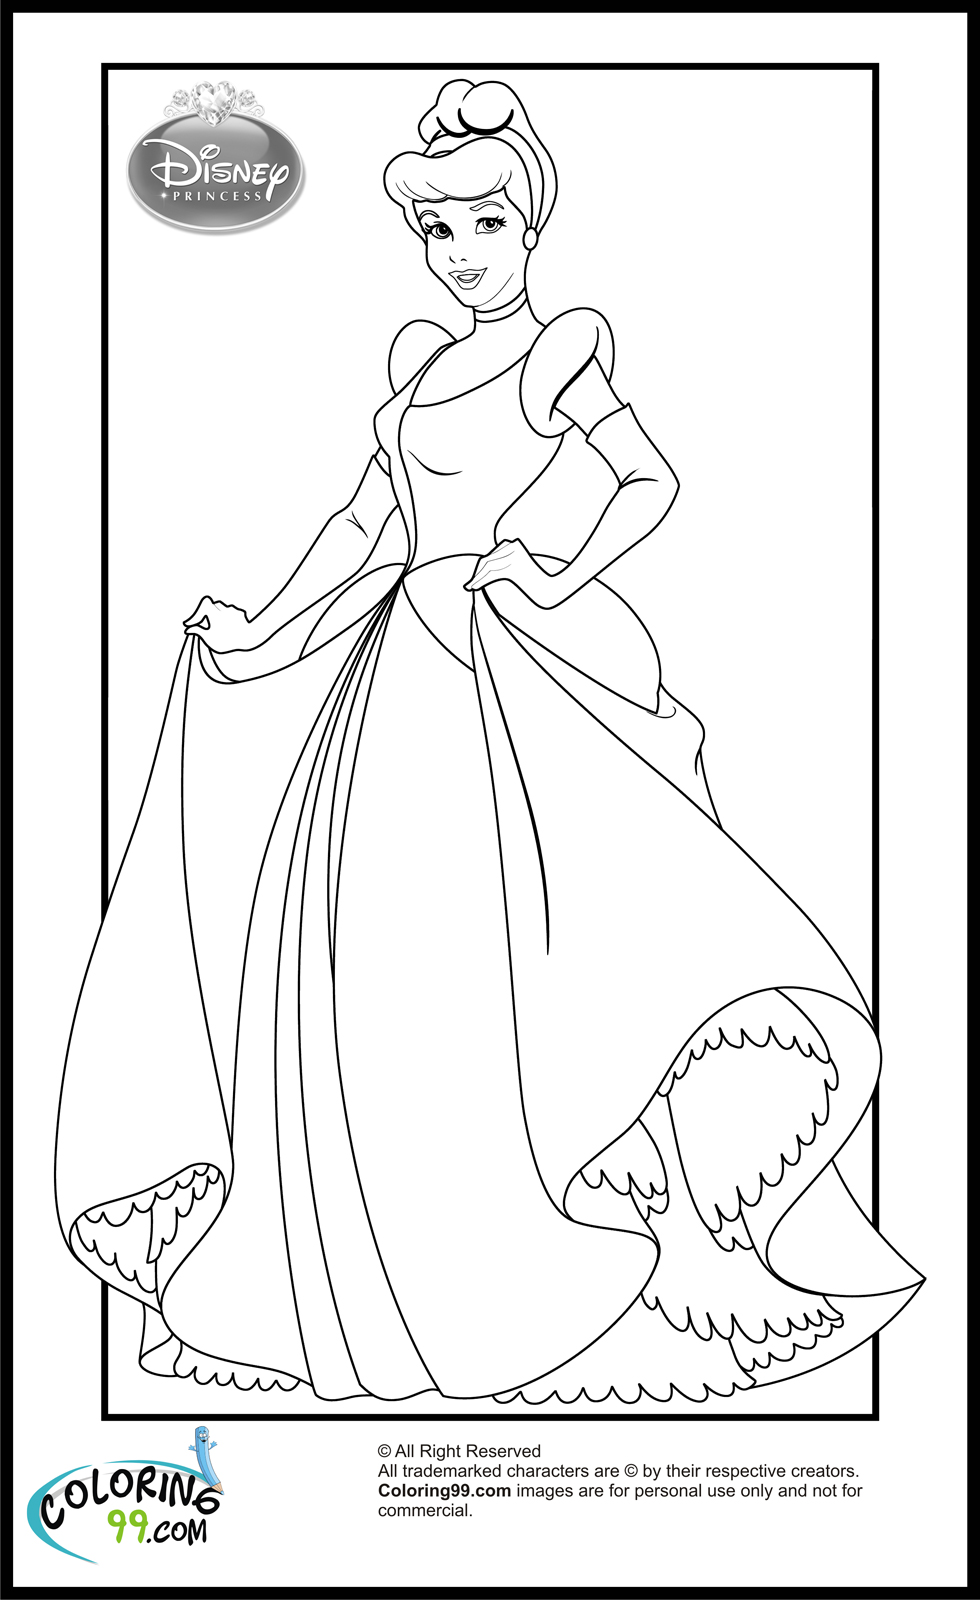 prncess coloring pages - photo#34